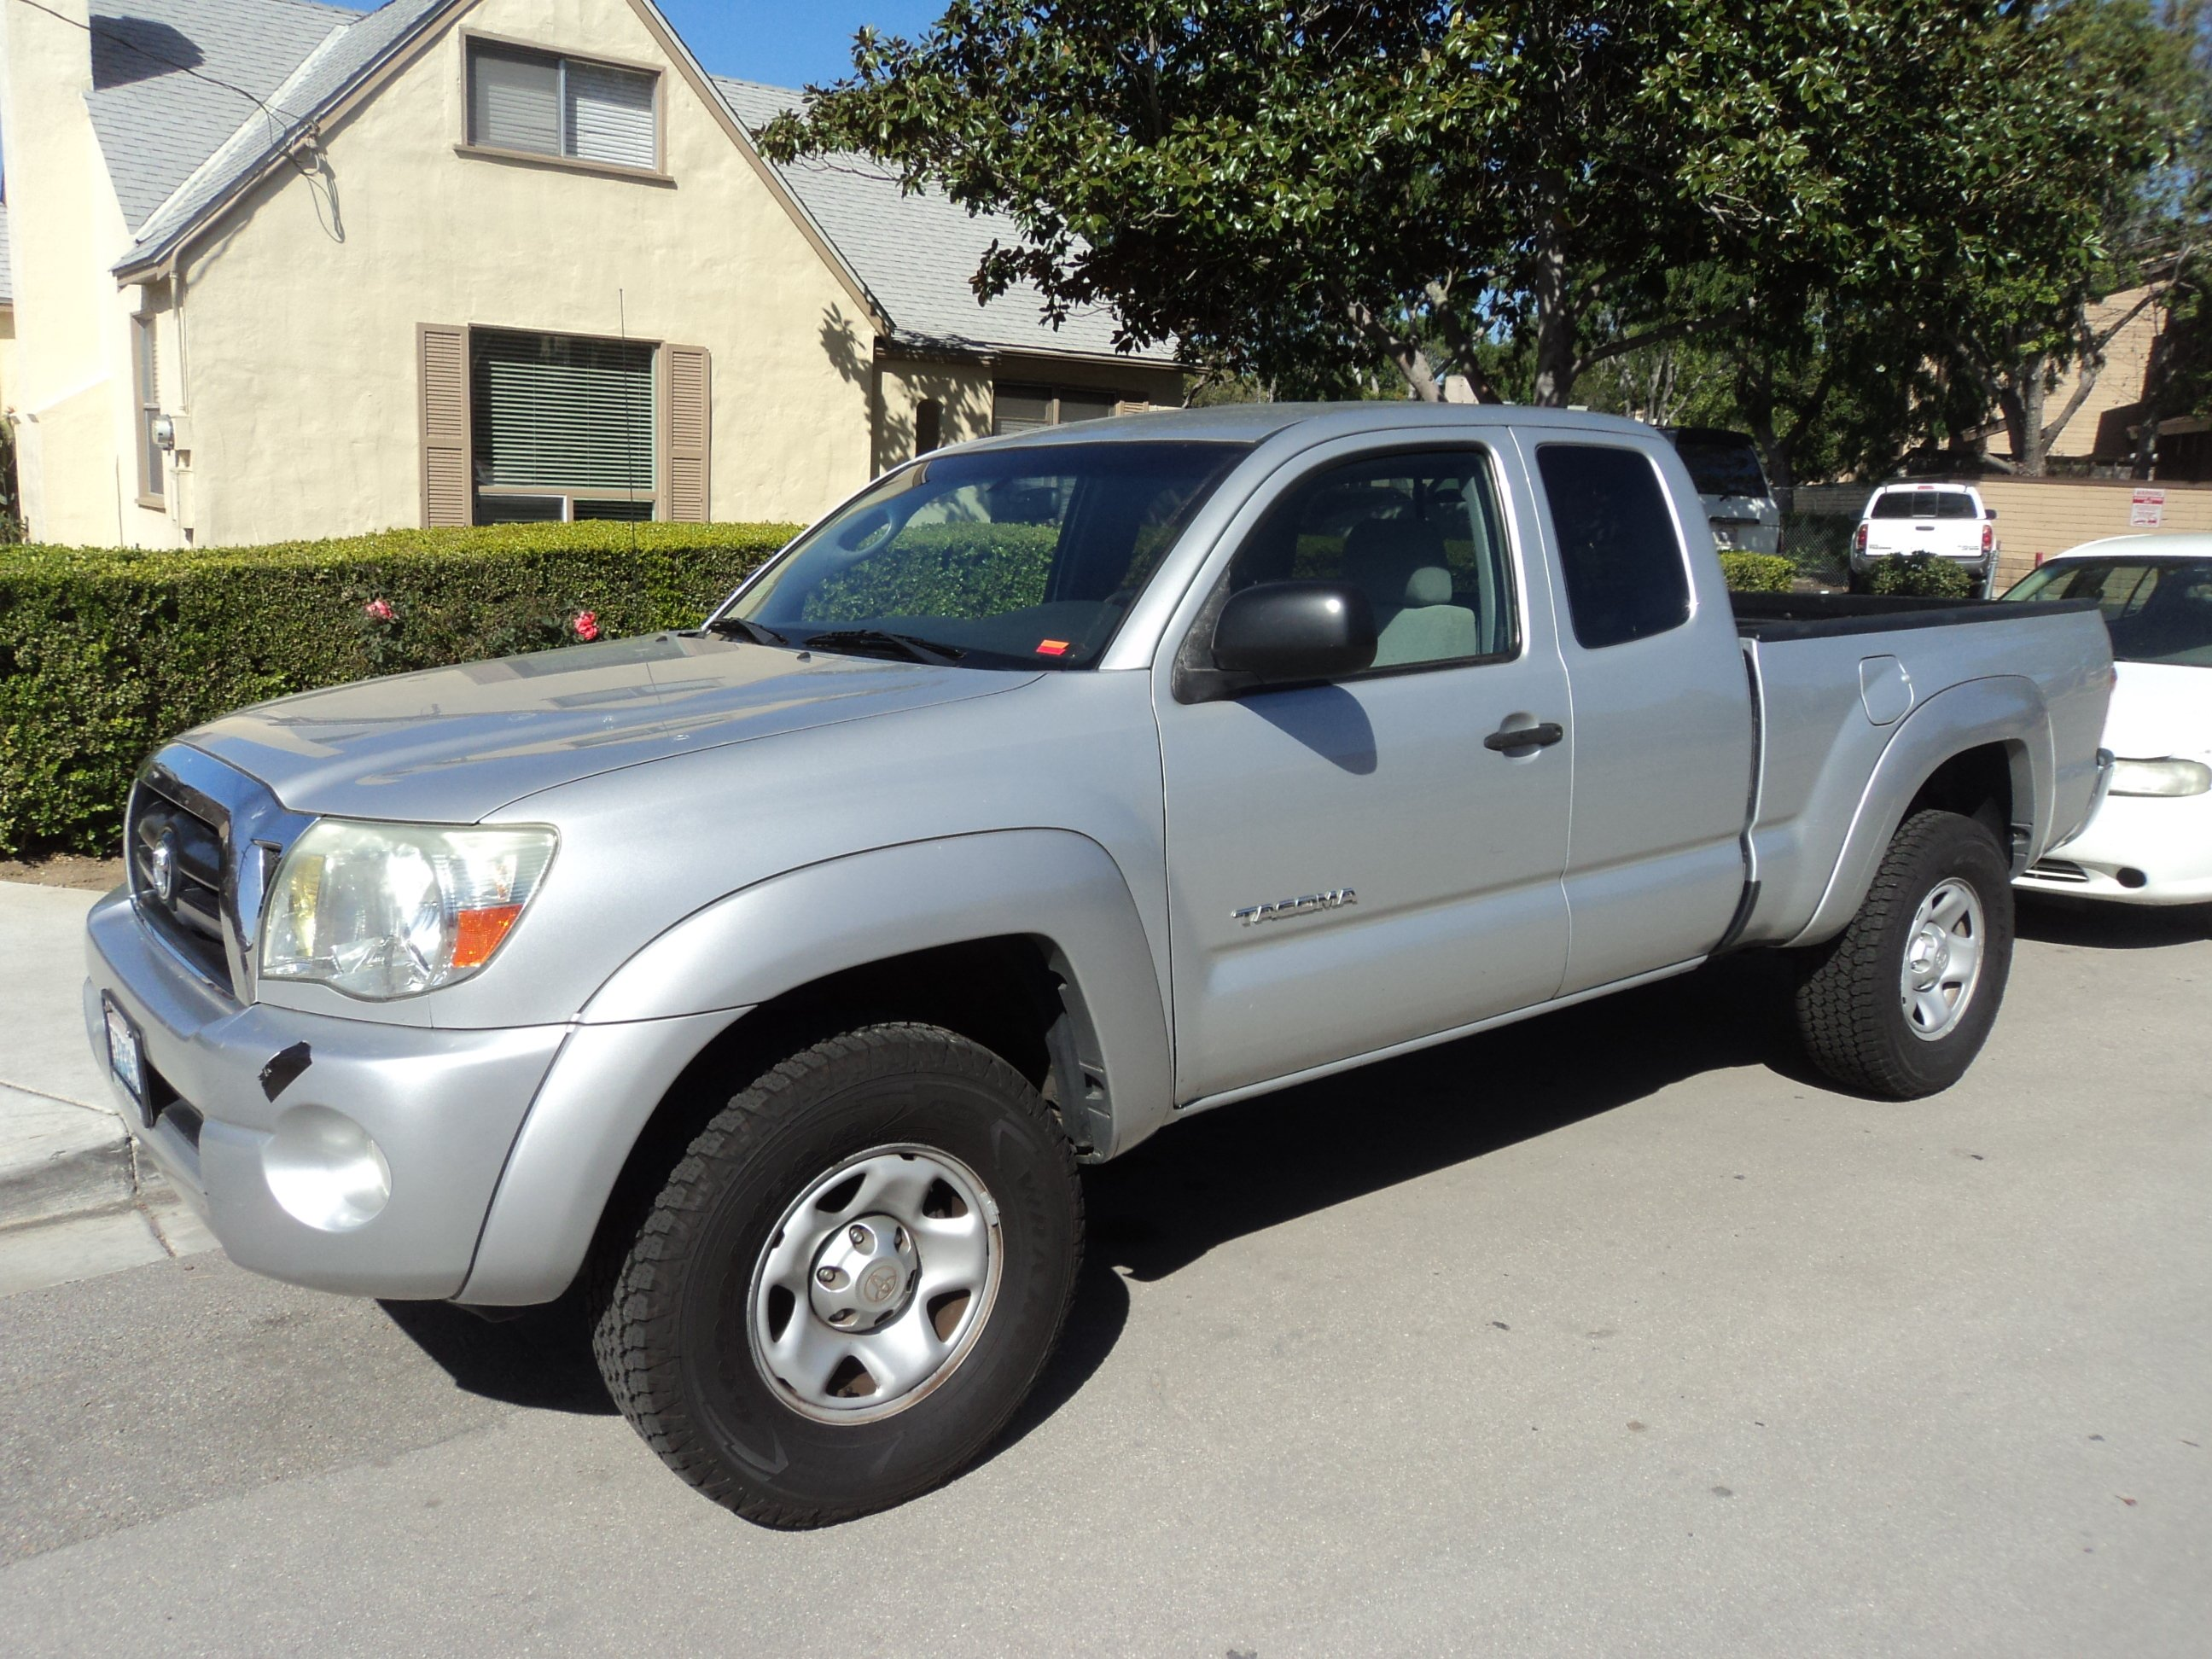 Toyota Tacoma Oil Change - iFixit Repair Guide